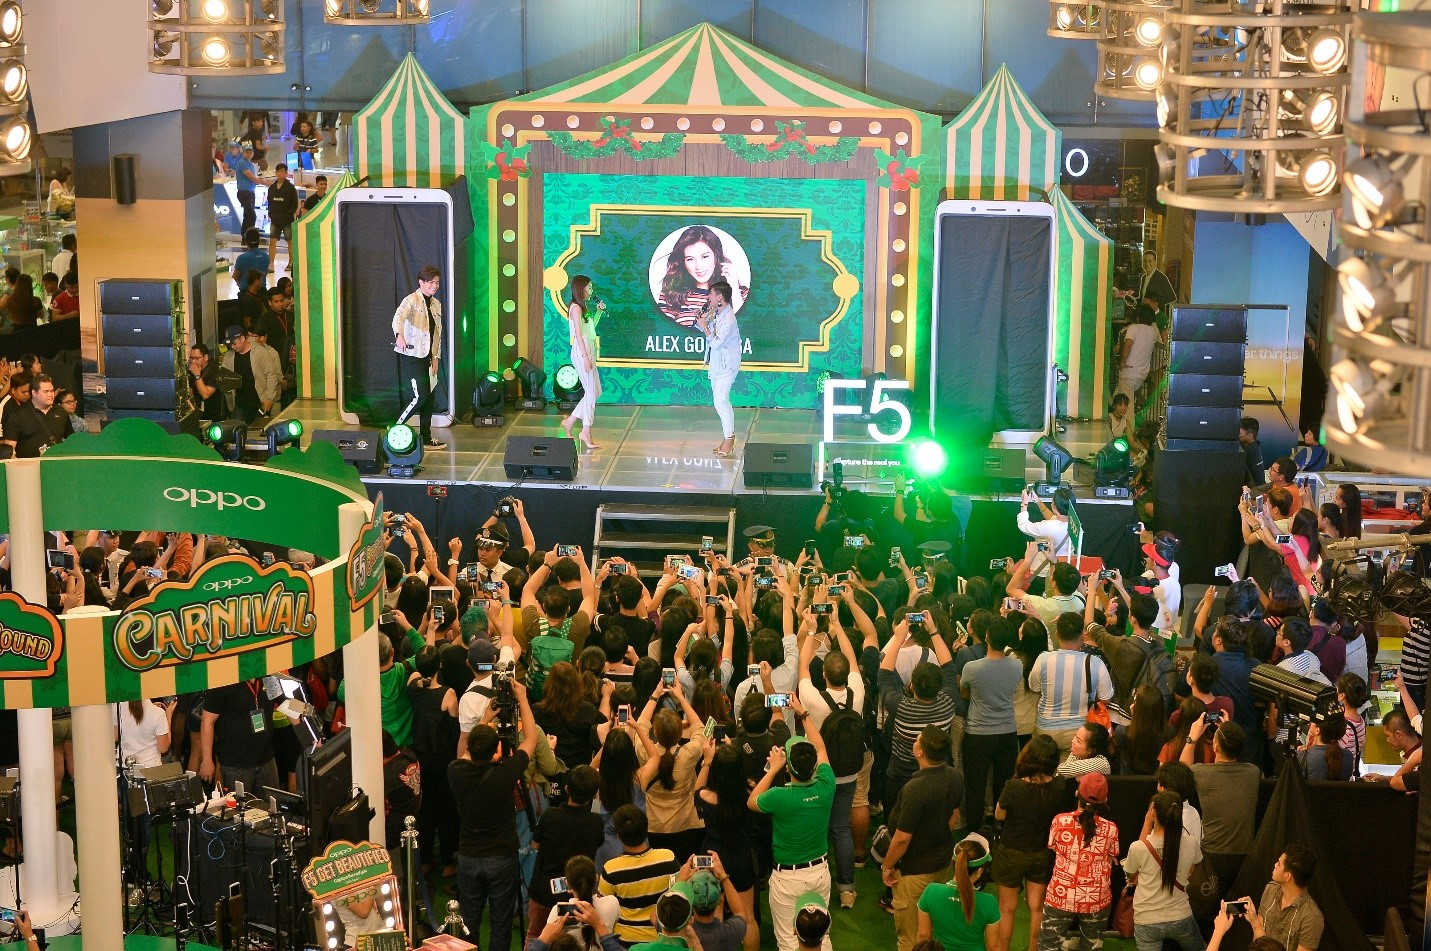 oppo roadshow 1 - OPPO Kicks off First Day of Sale for the F5 with a Carnival Roadshow!